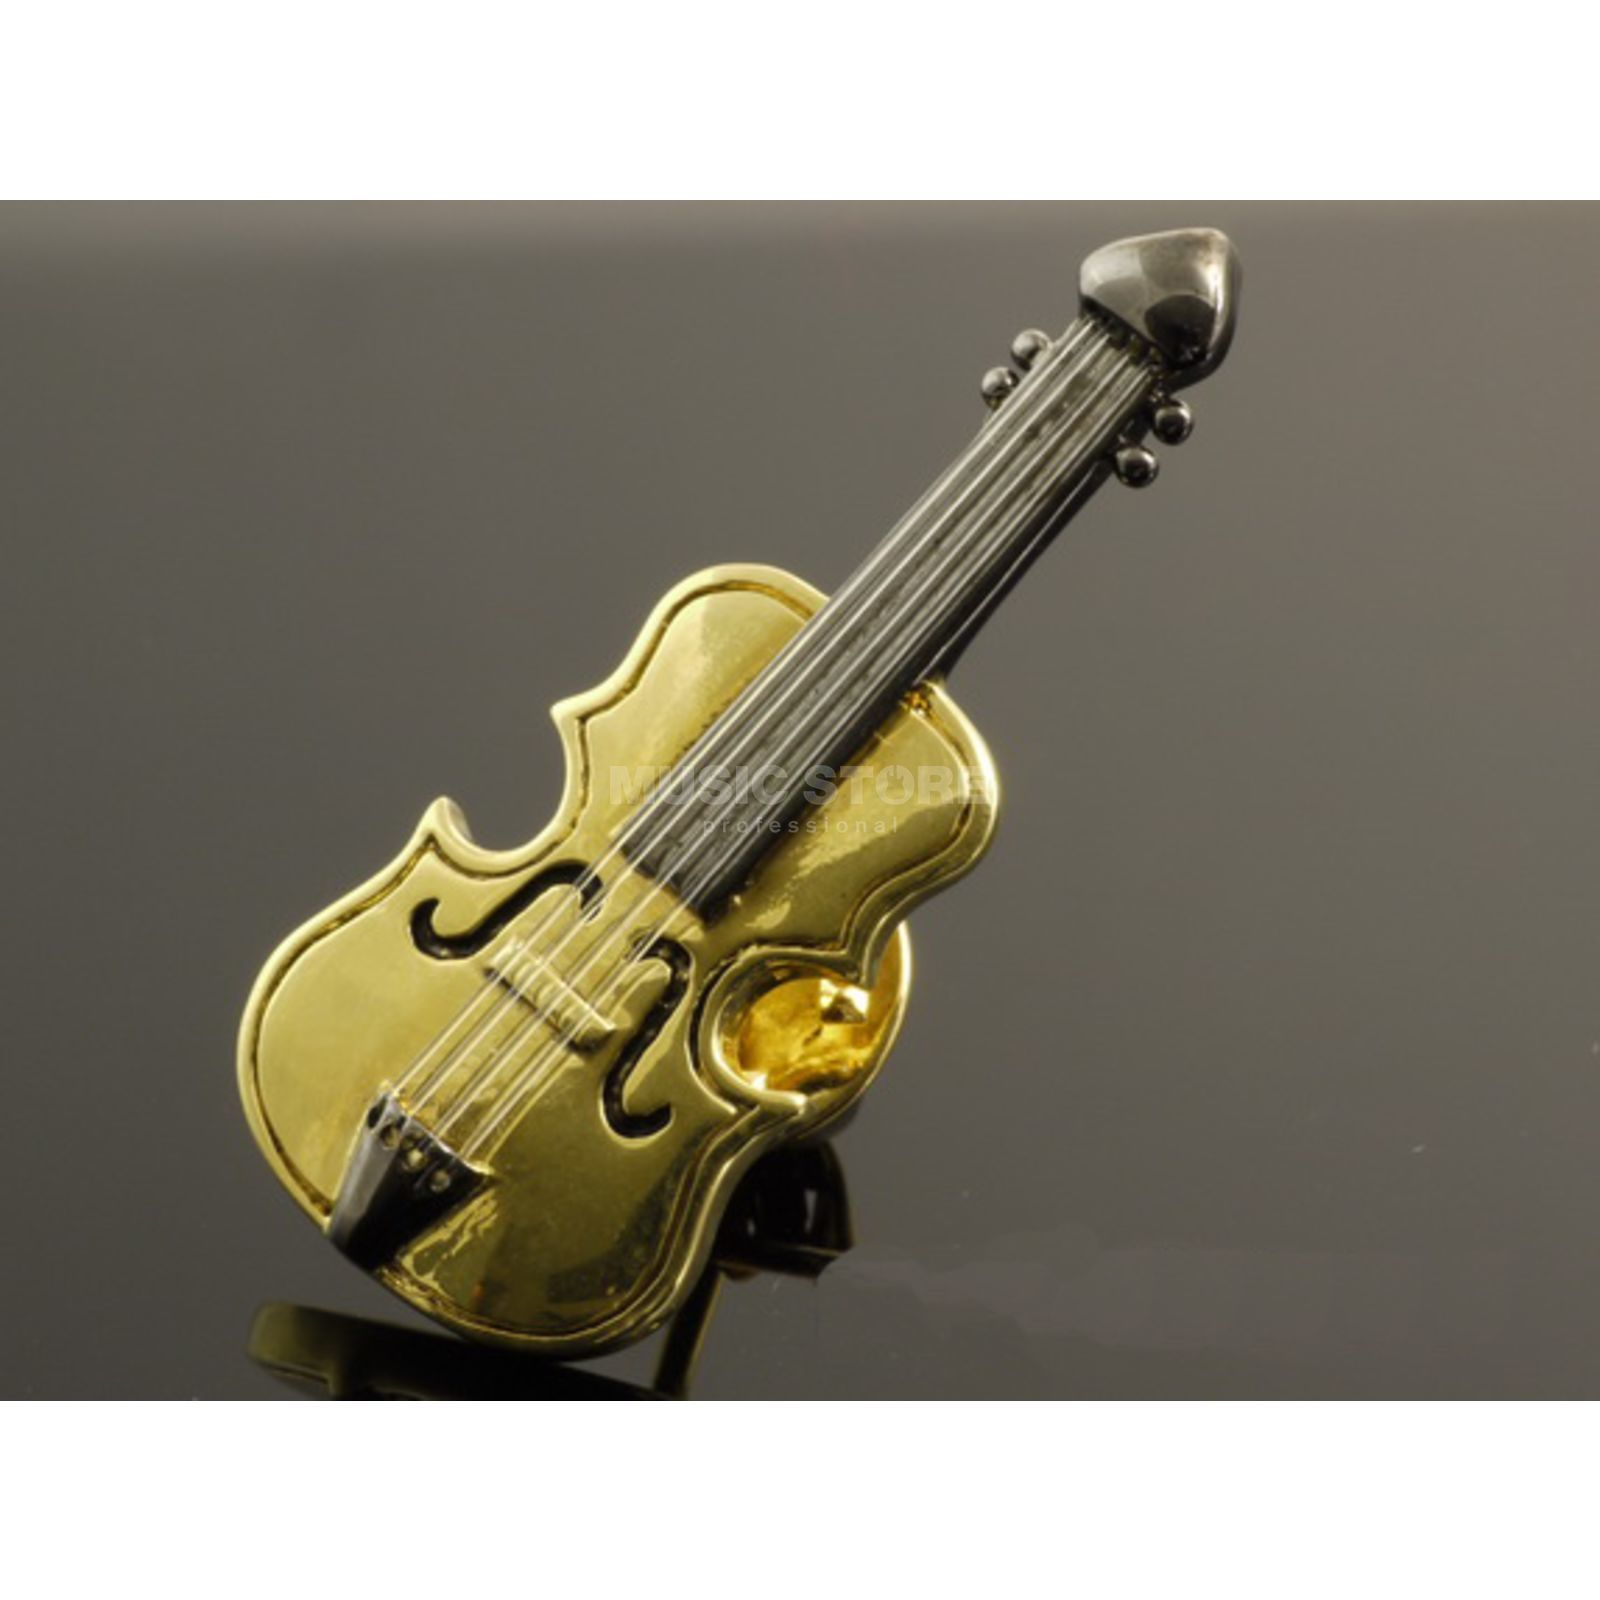 Rockys Pin Cello gold plated Produktbillede